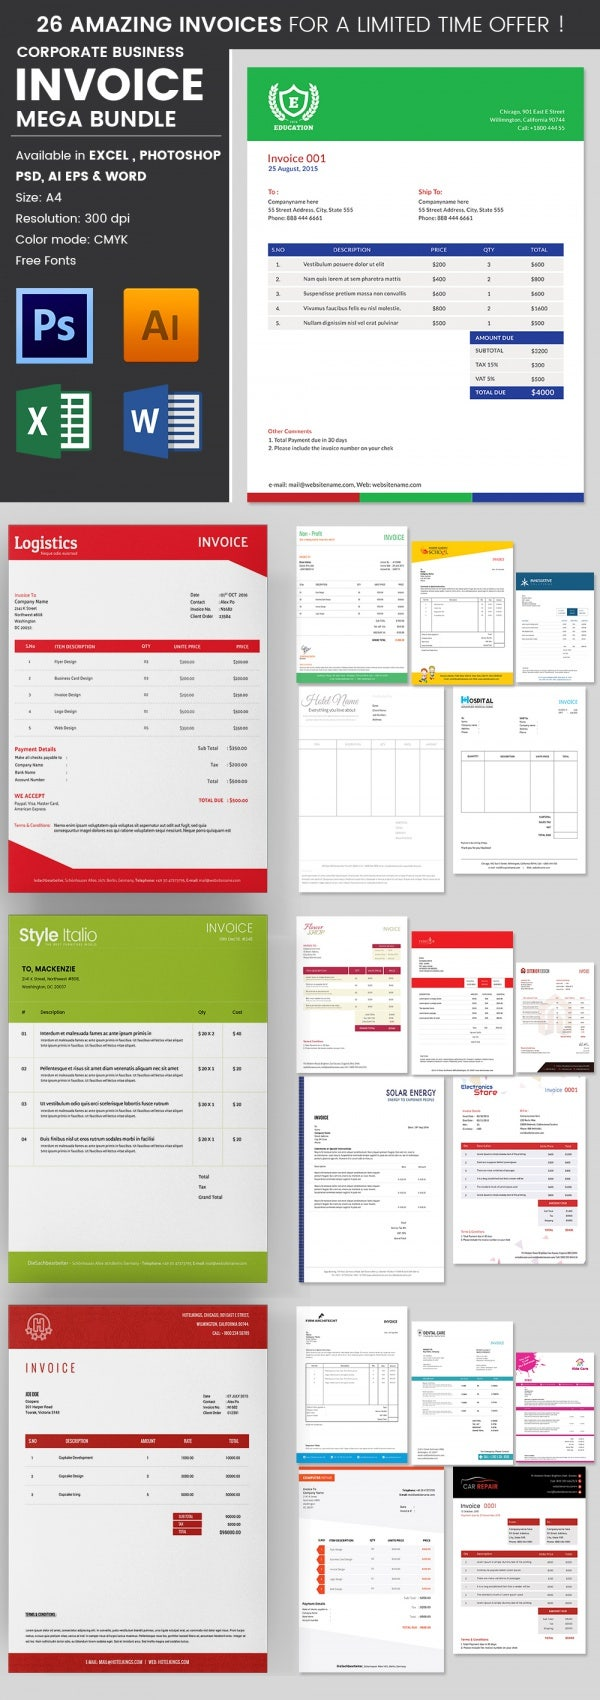 Corporate Business Invoice Bundle